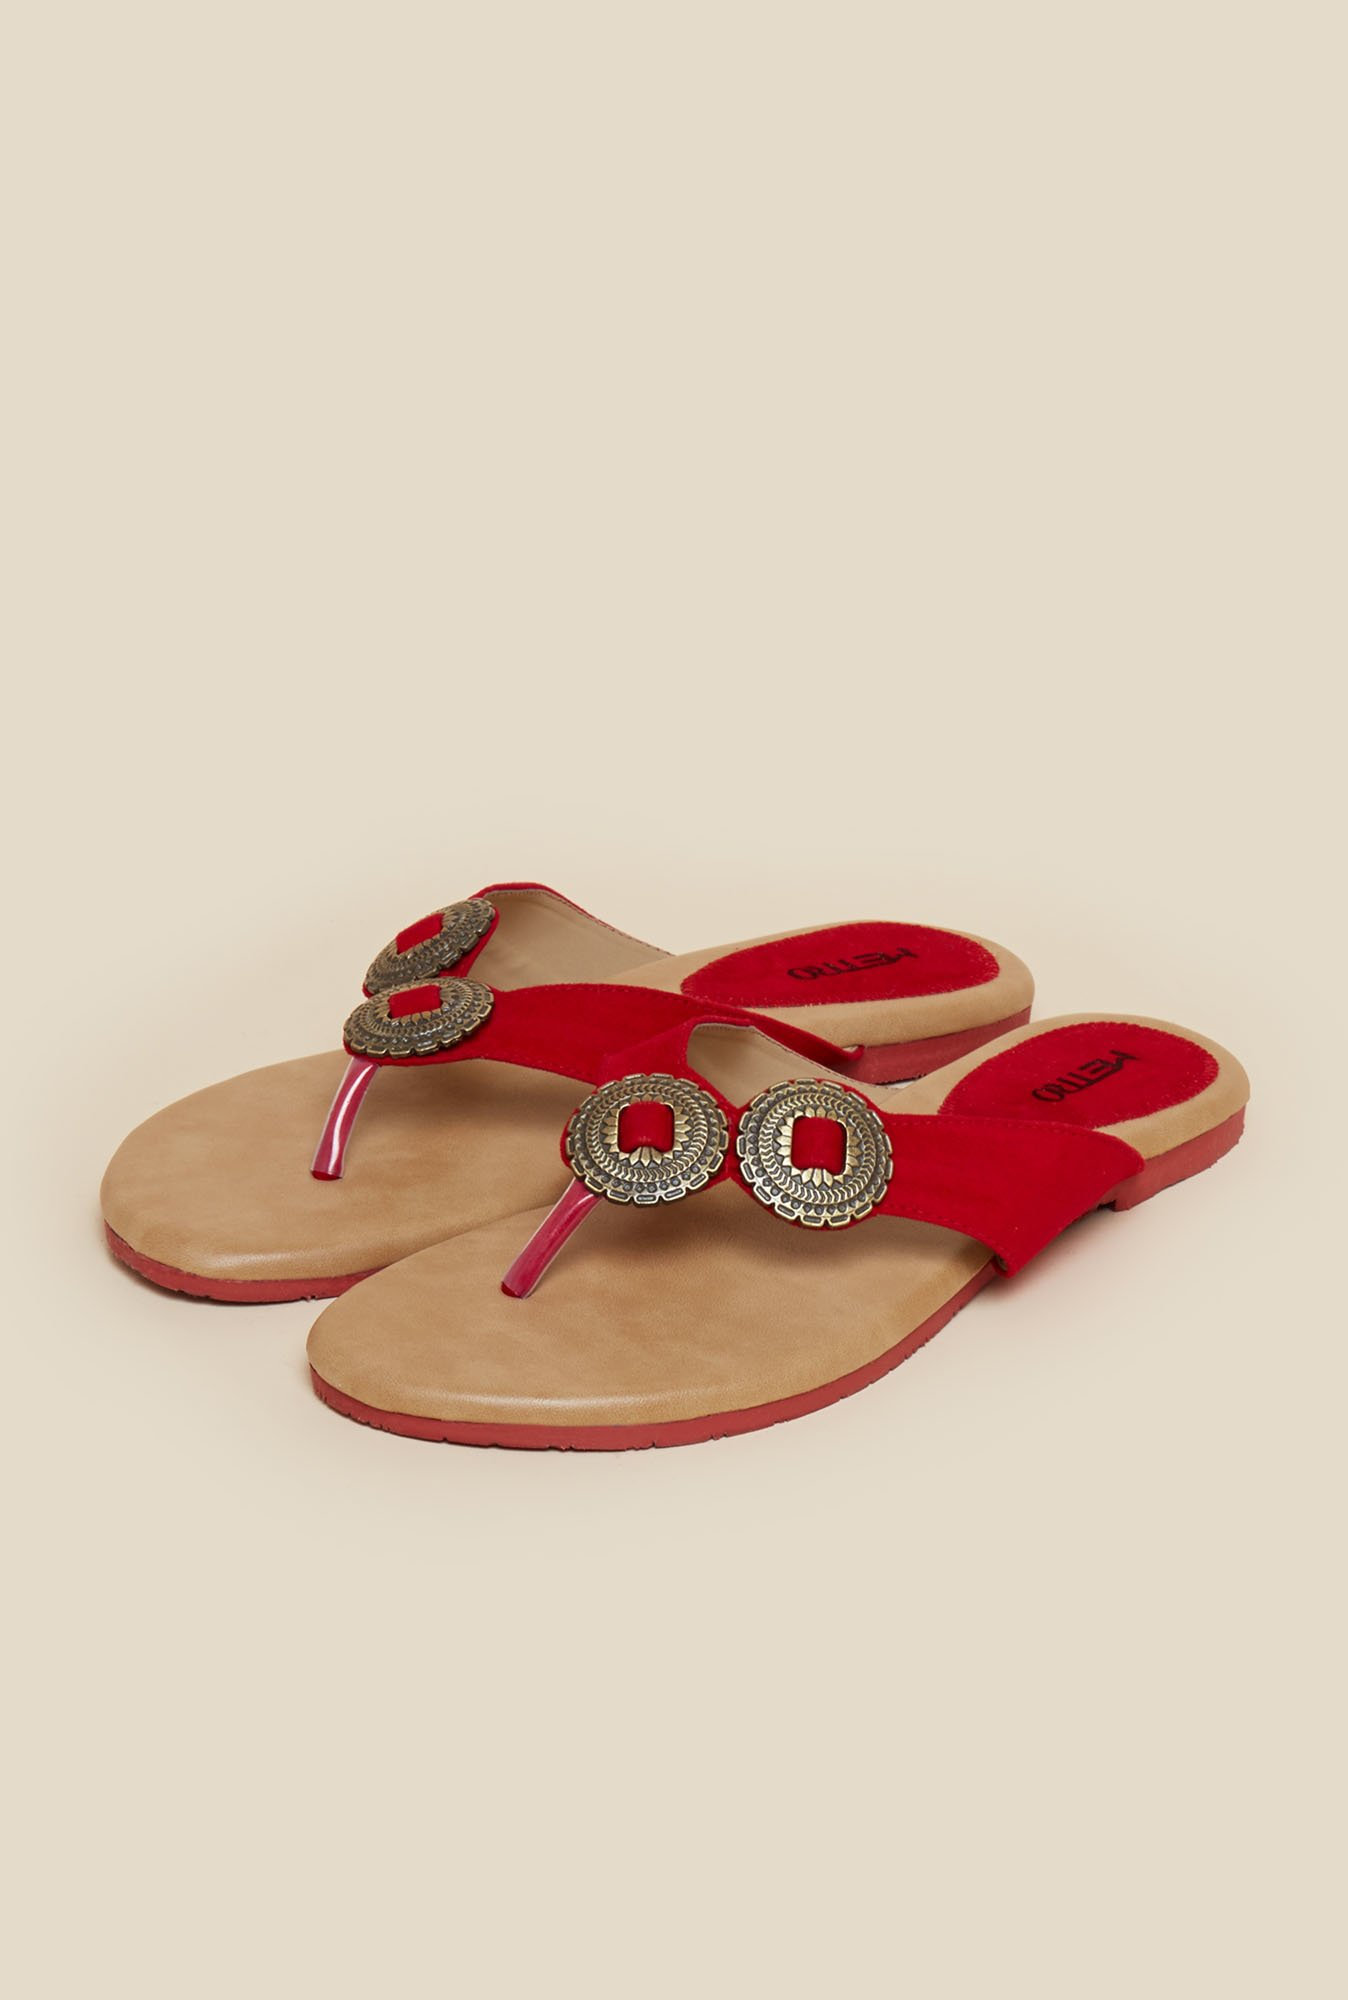 Metro Red Embellished Flat Sandals